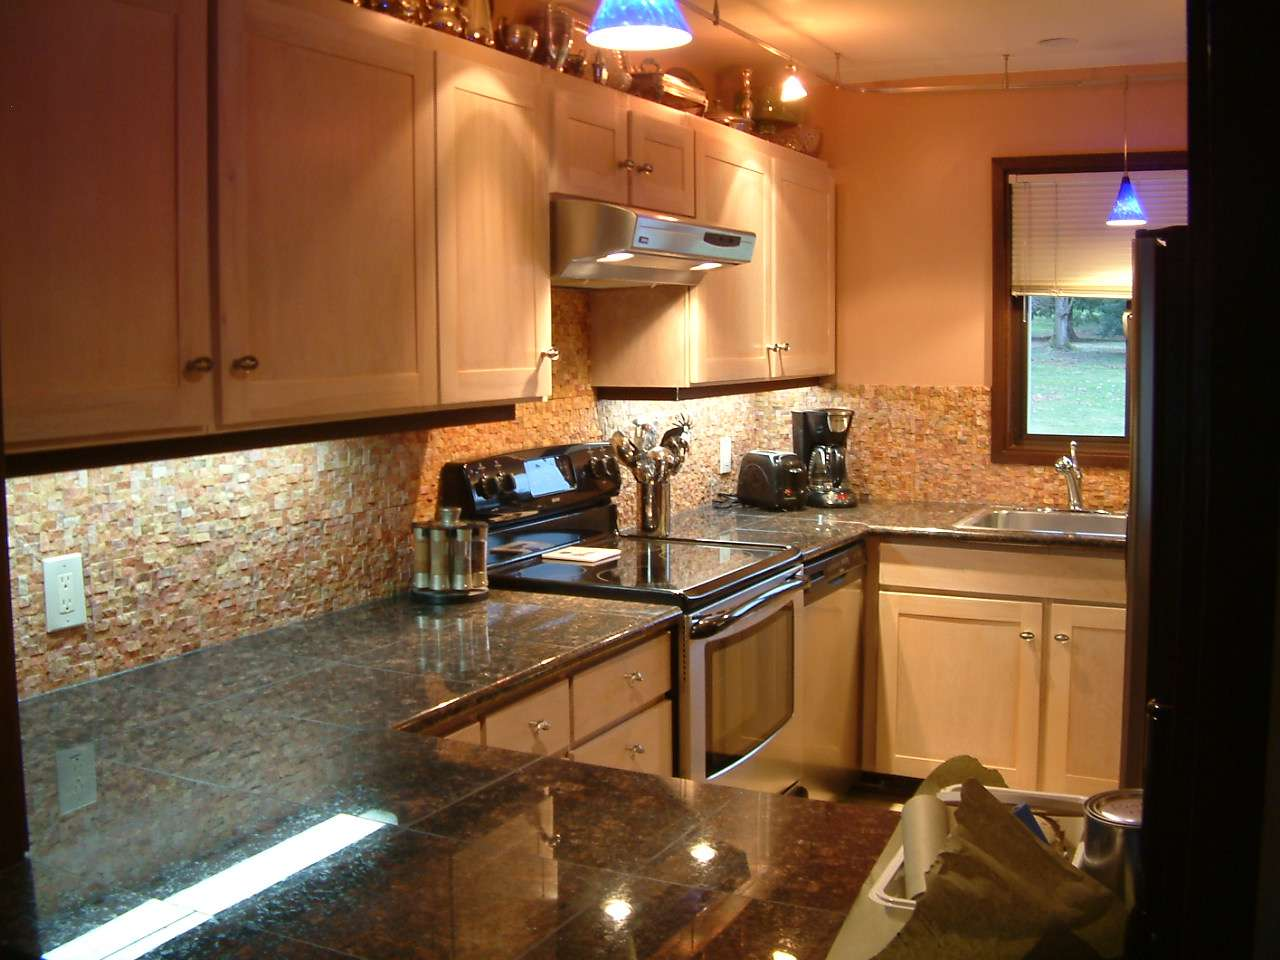 Kitchen Photos Show Our Terra Wall Tiles Used Both Backsplash